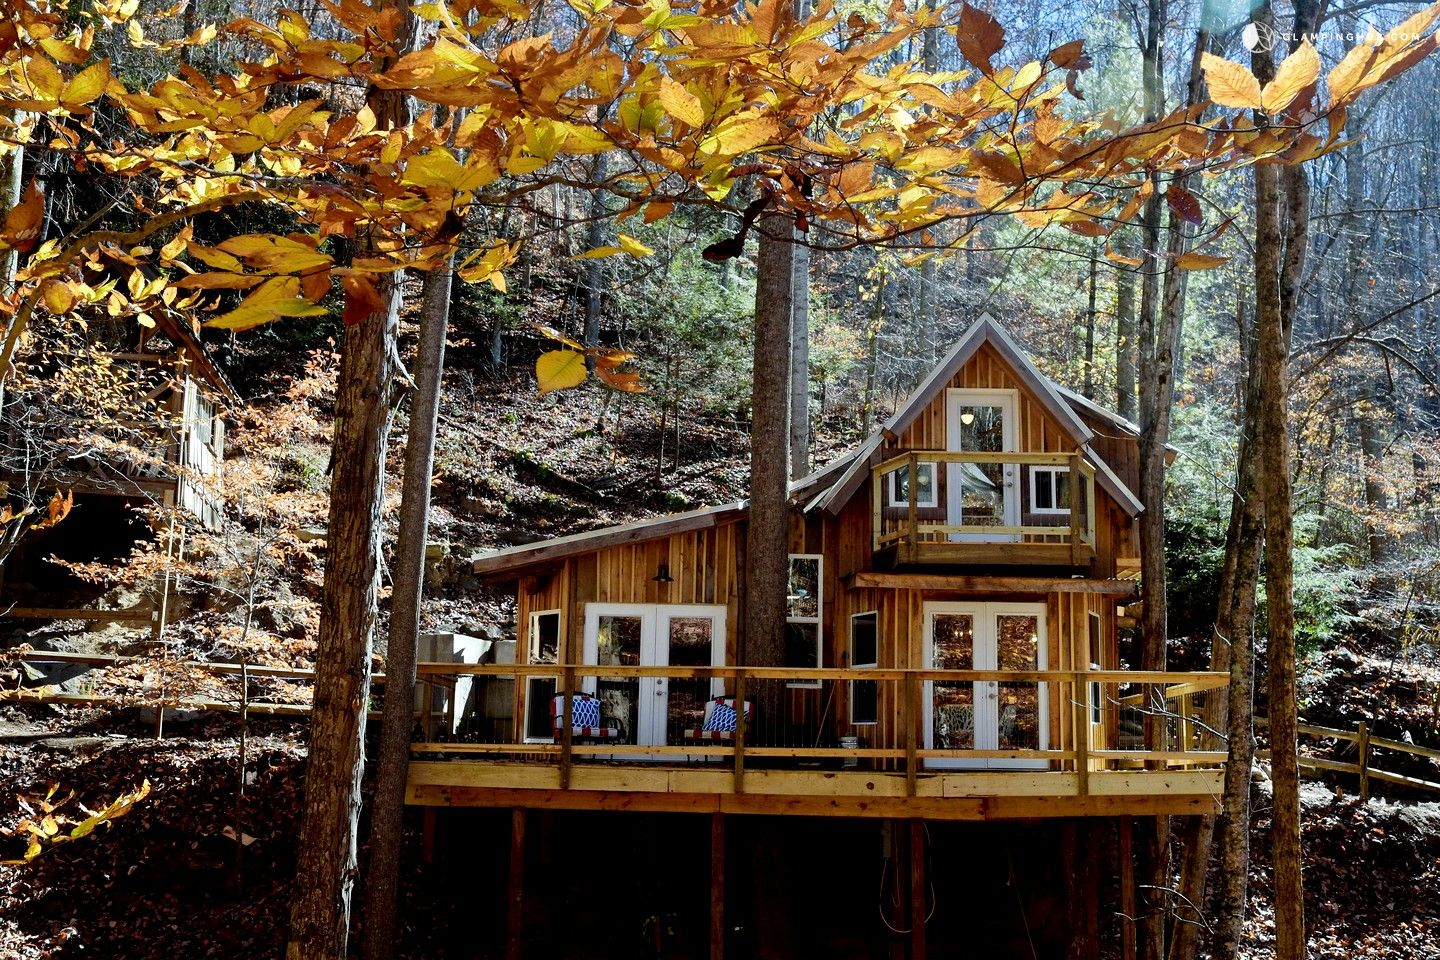 Eco-Friendly Elevated Cabin Rental for Tree House Experience